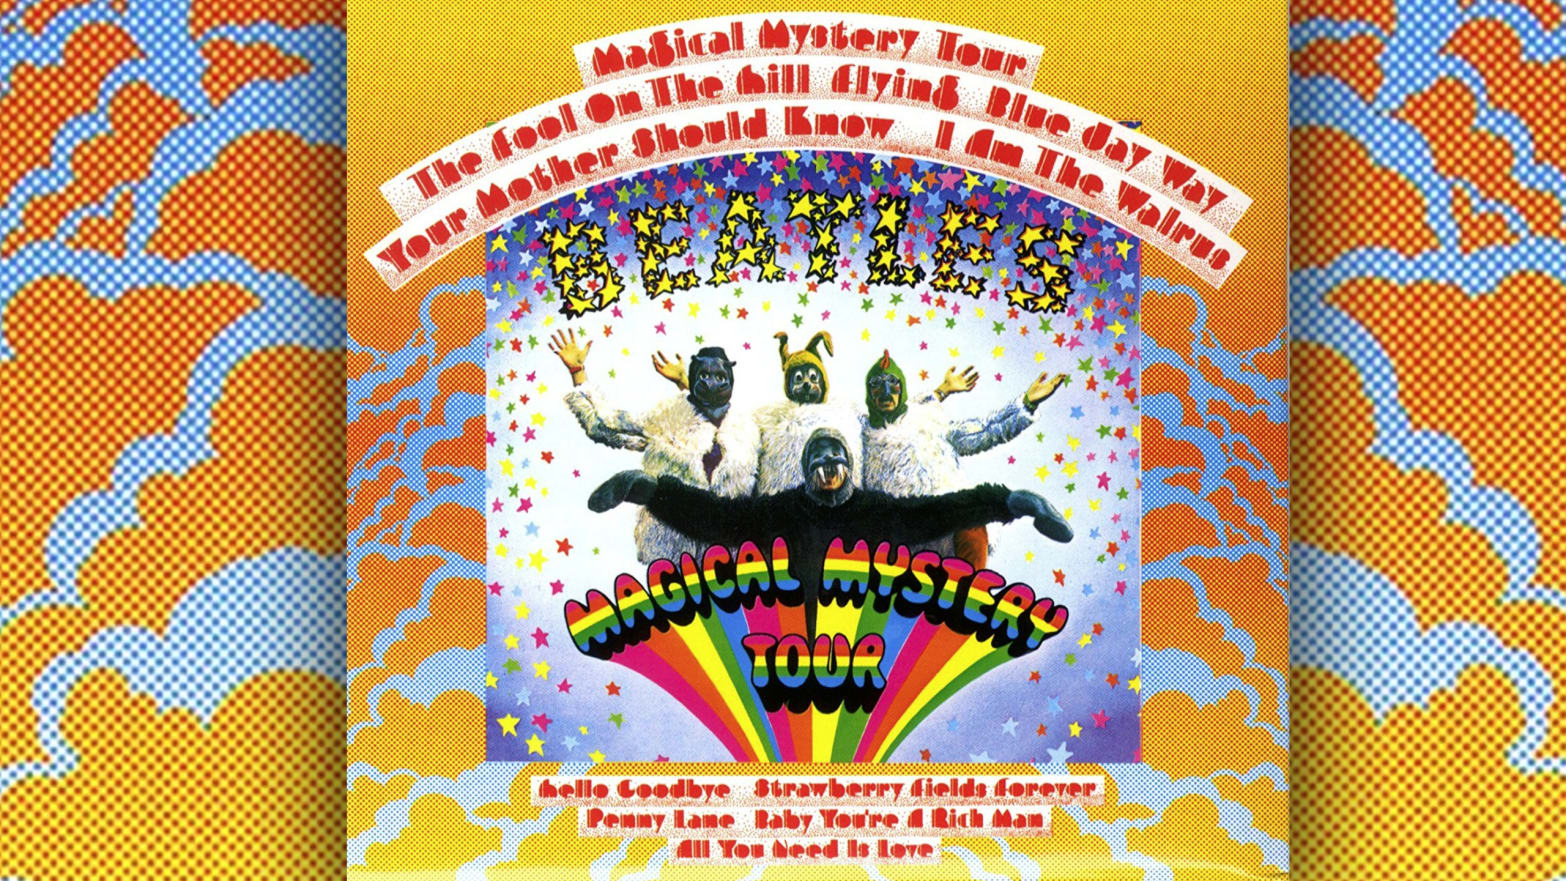 The Beatles Magical Mystery Tour At 50 A Monument To Paul Mccartney S Genius